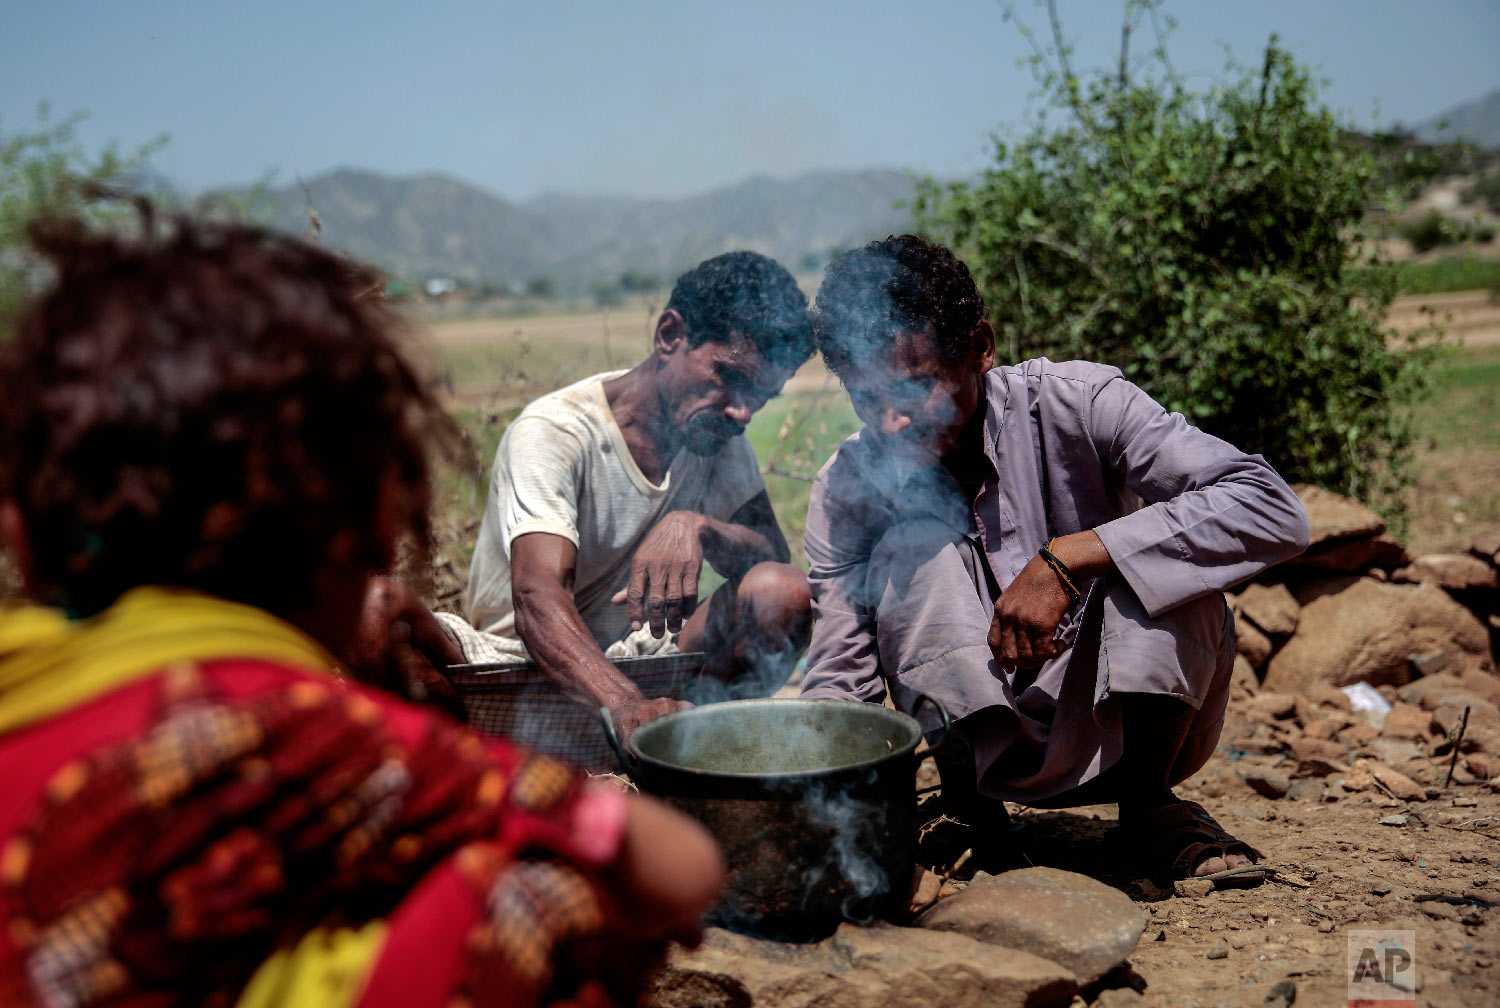 Men cook Halas for their children, a climbing vine of green leaves, in Aslam, Hajjah, Yemen. The leaves are made into green paste and used to be a traditional side dish, but at times of extreme poverty, it becomes the main meal. (AP Photo/Hani Mohammed)